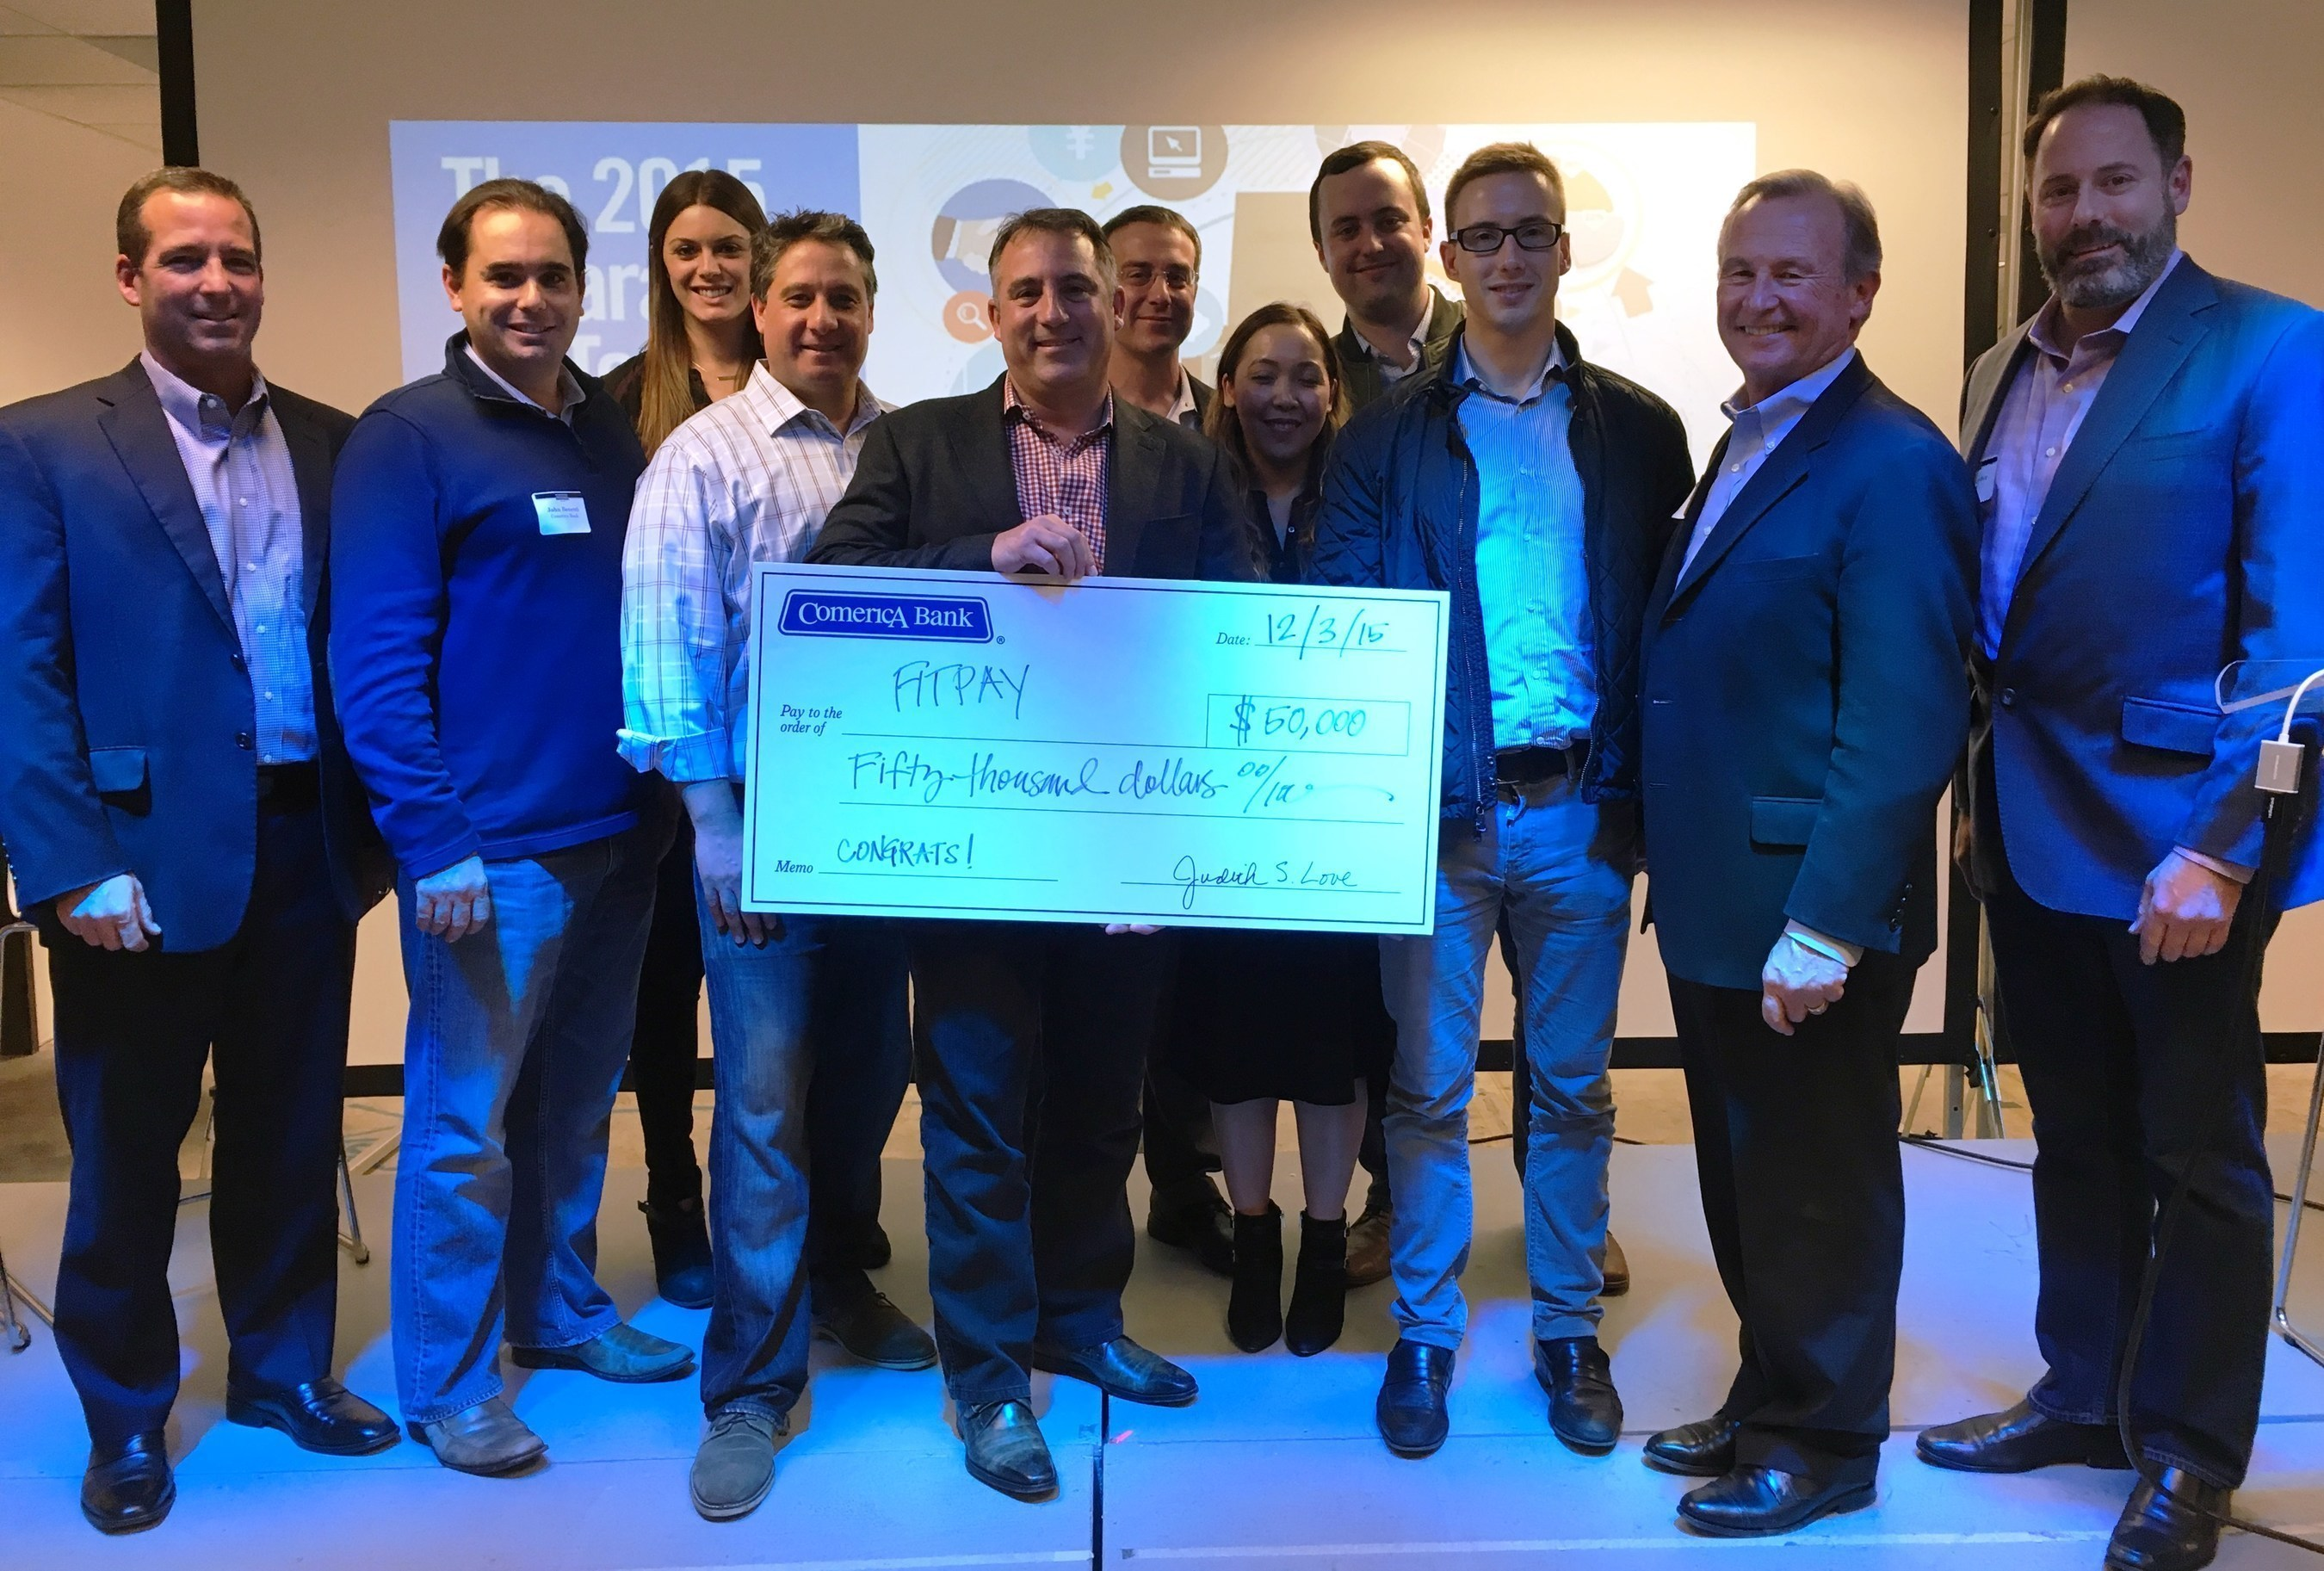 FitPay Wins the Comerica Bank and RocketSpace 2015 Wearable FinTech Startup Challenge